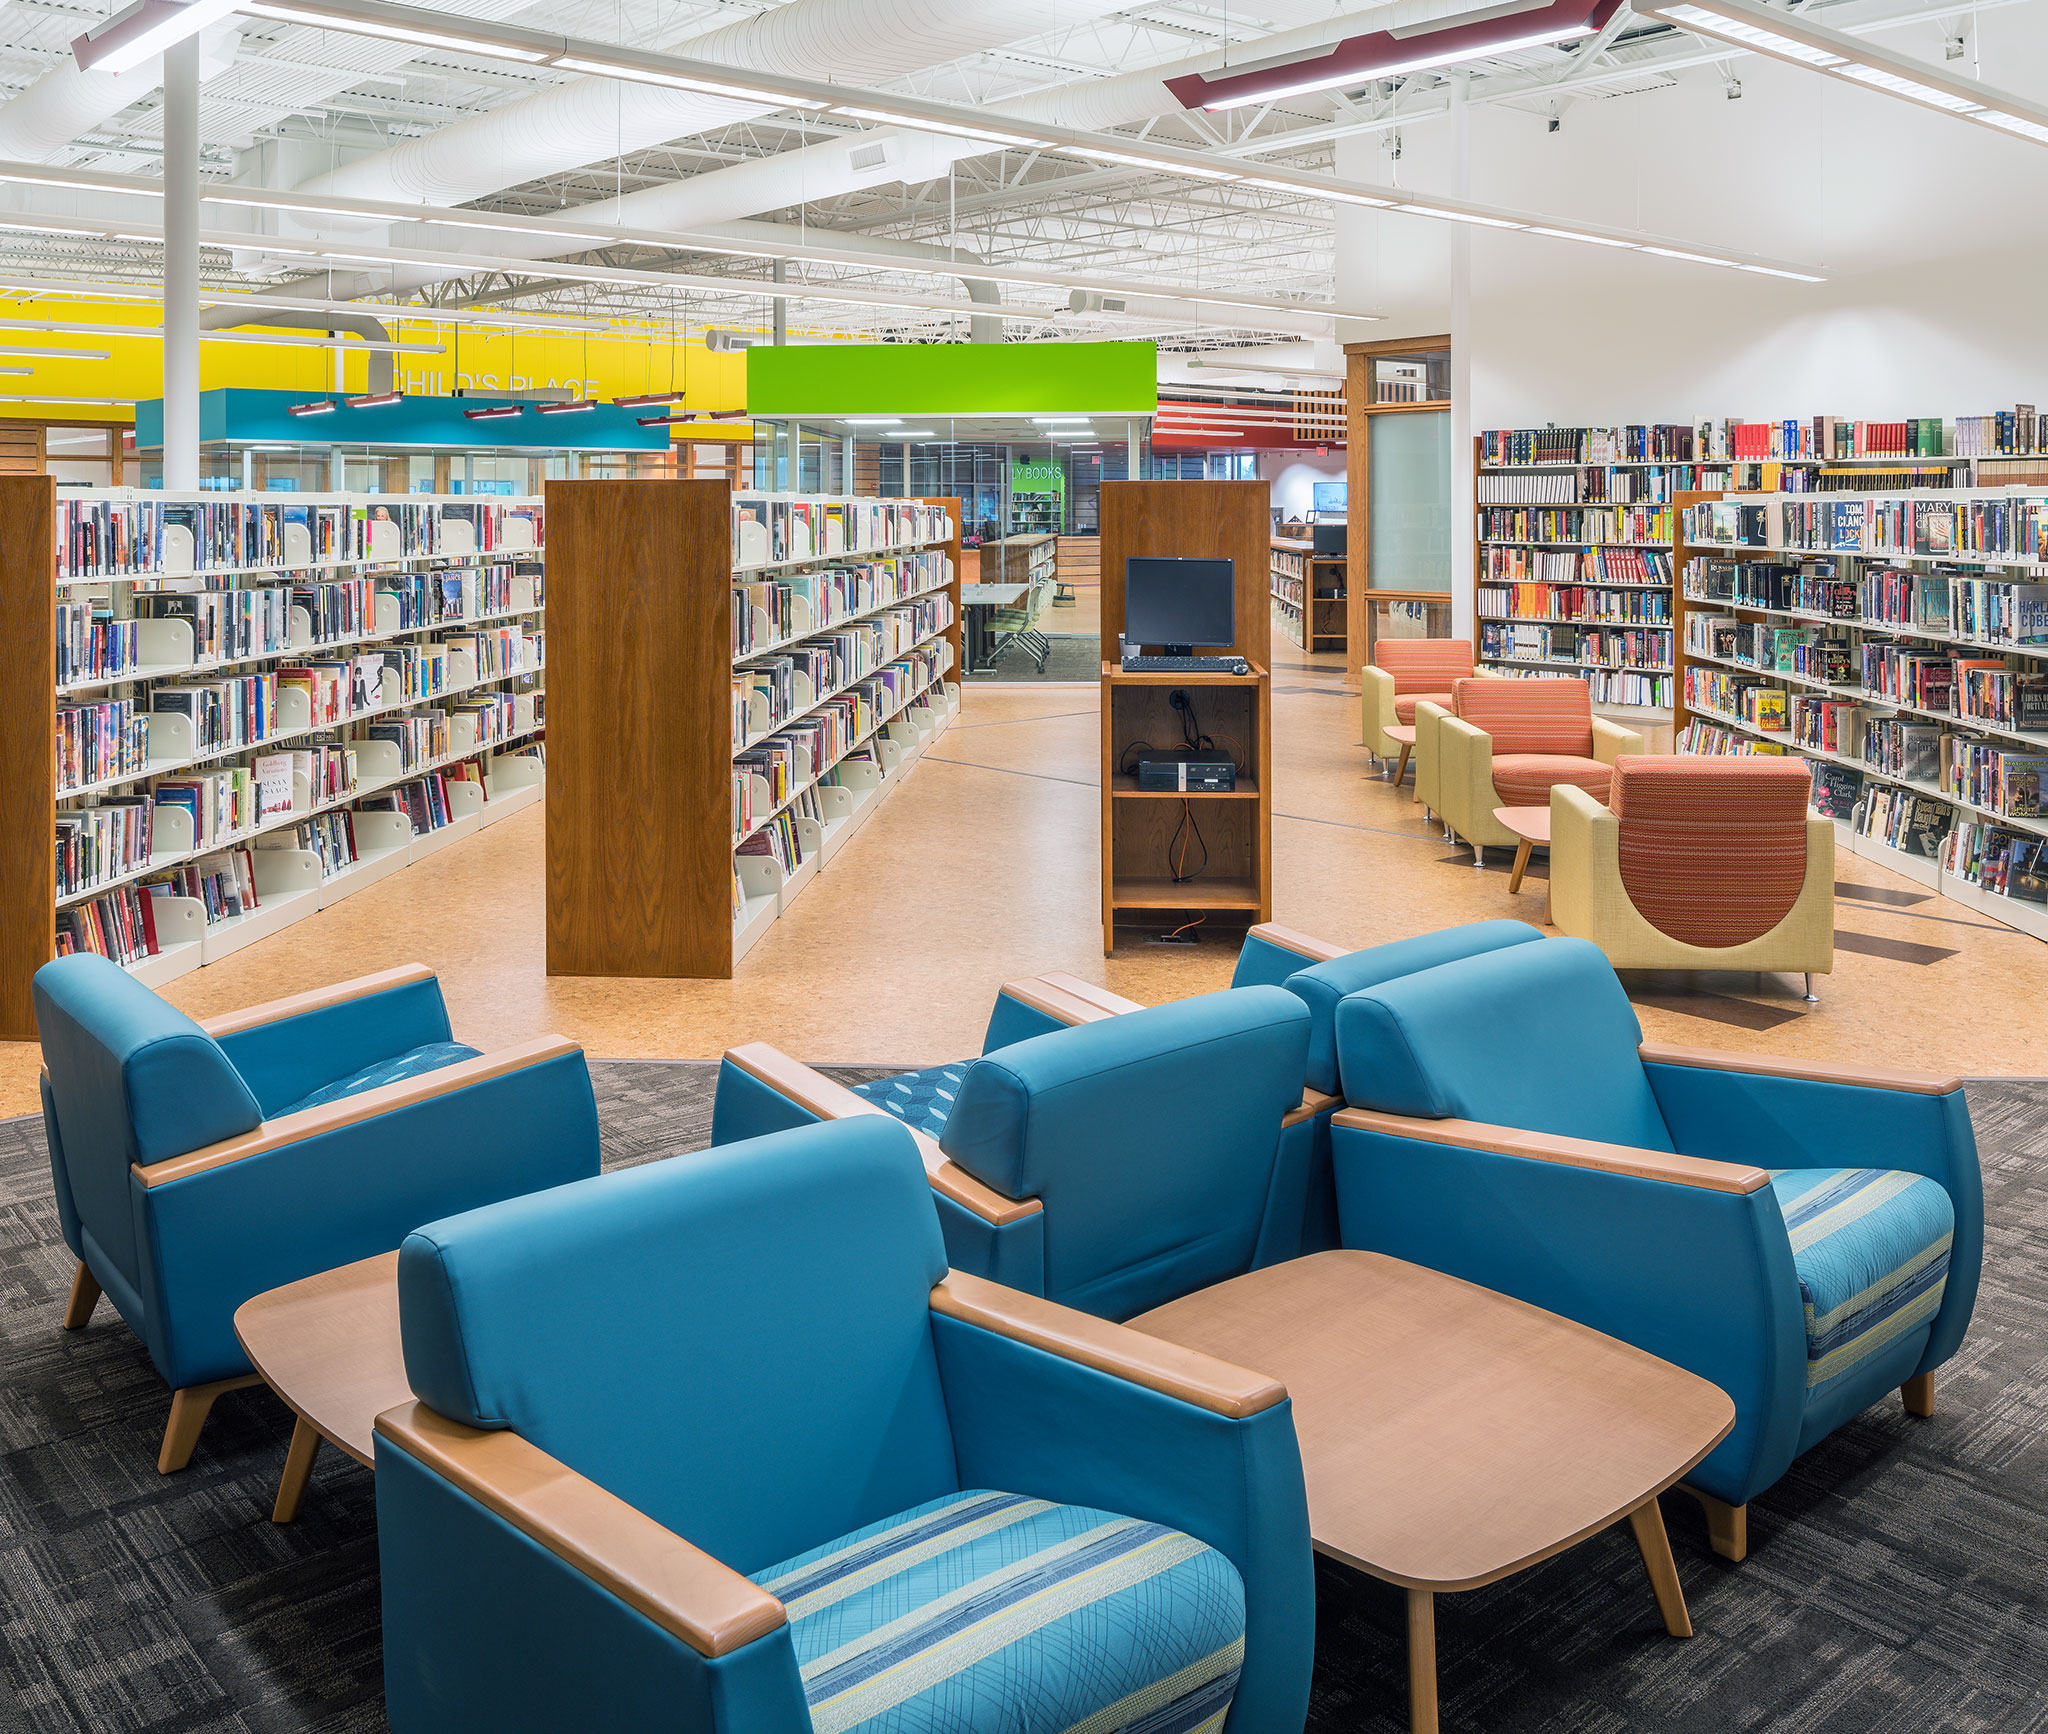 Cabot_library03_Sela_TeaCup_library_corbett_norristown_experience-center.jpg